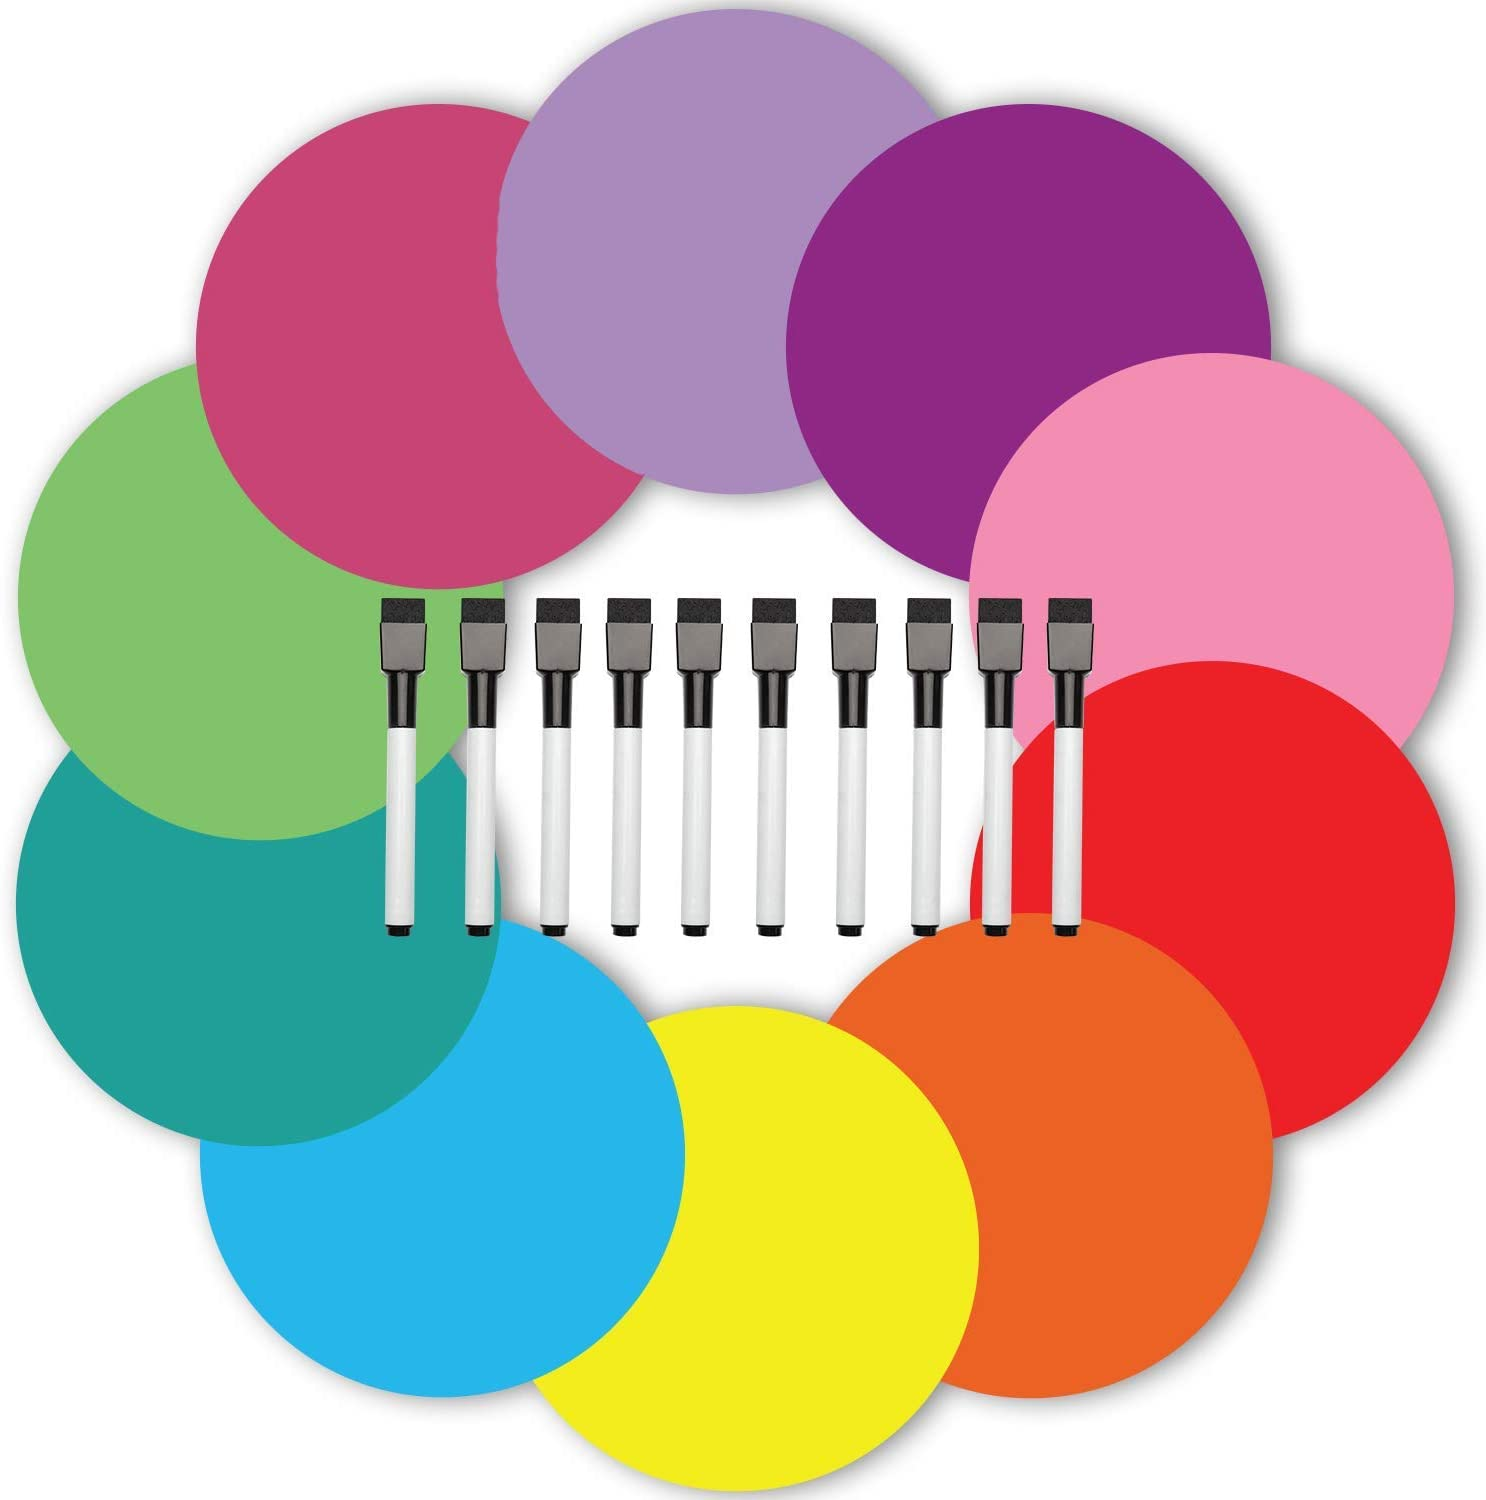 Dry Erase Circles Max Sale 73% OFF 20 Pieces Markers with Eraser and